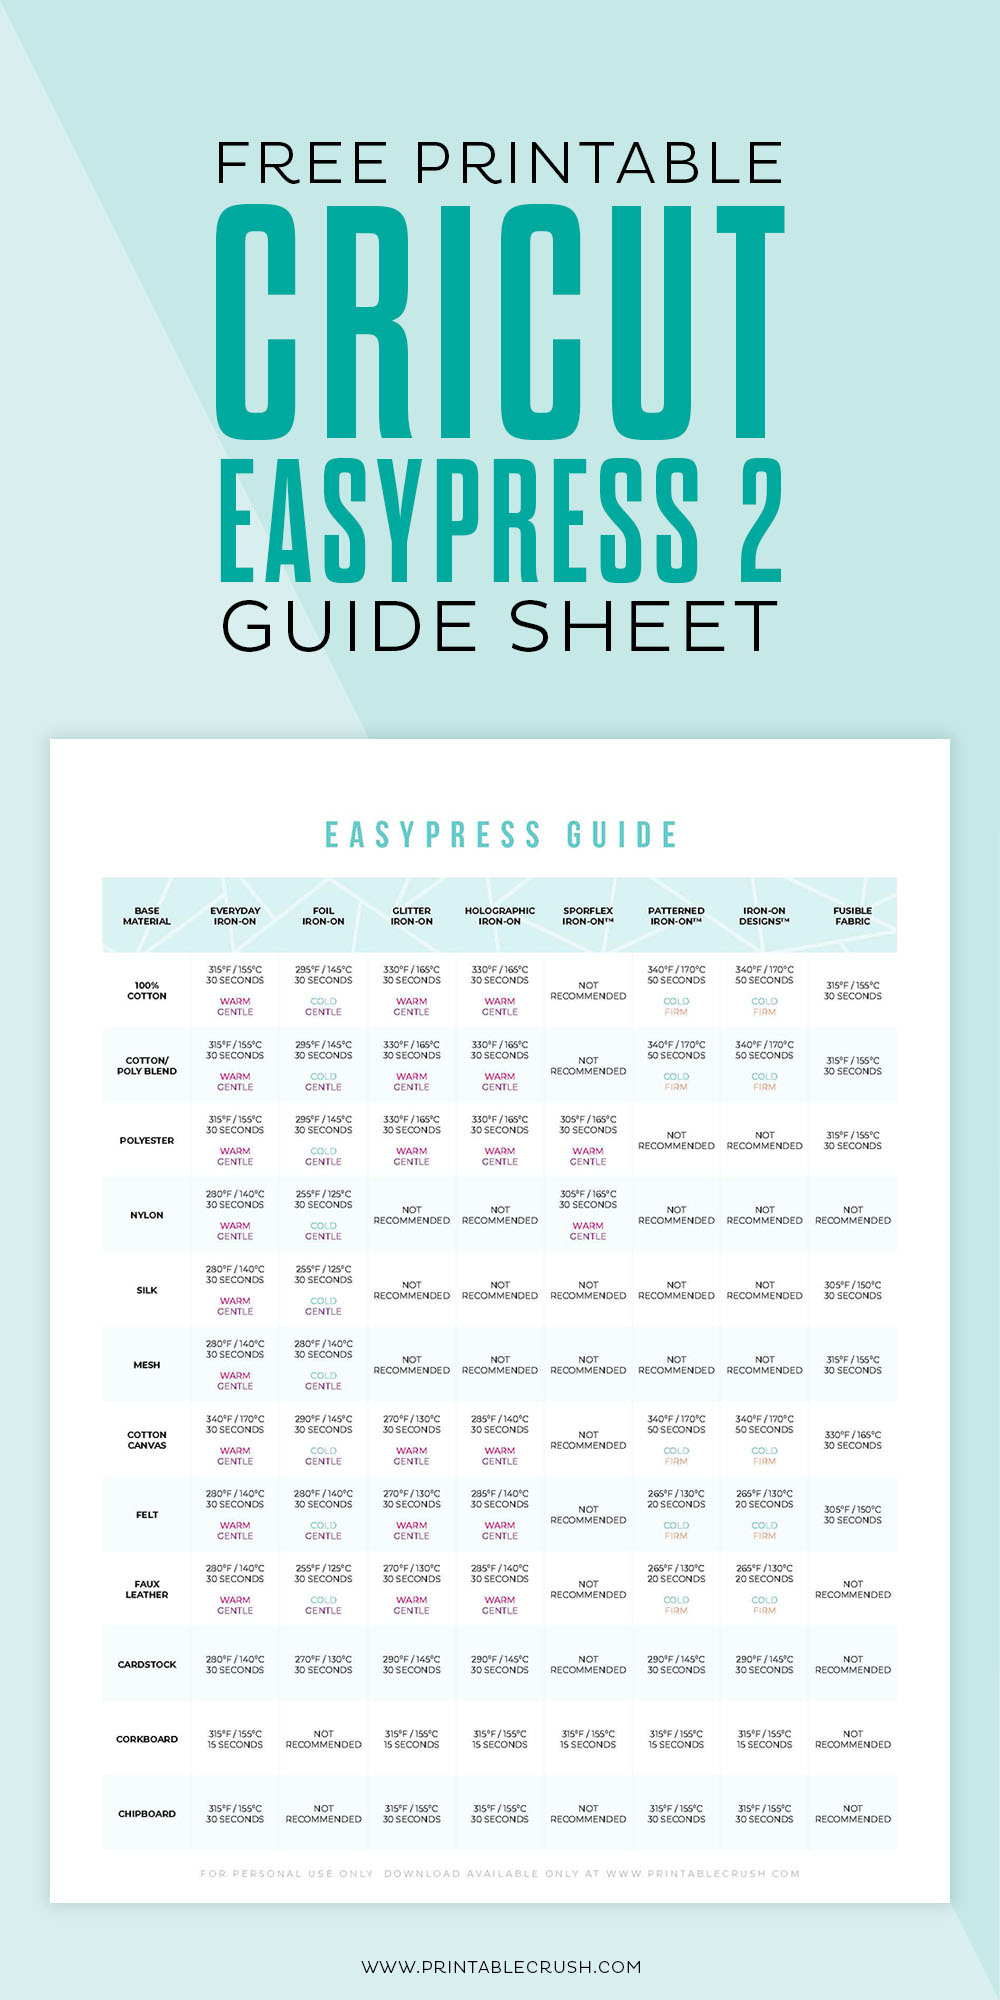 Download this FREE Printable Cricut EasyPress 2 Guide Sheet so you can make the perfect iron-on project every time!